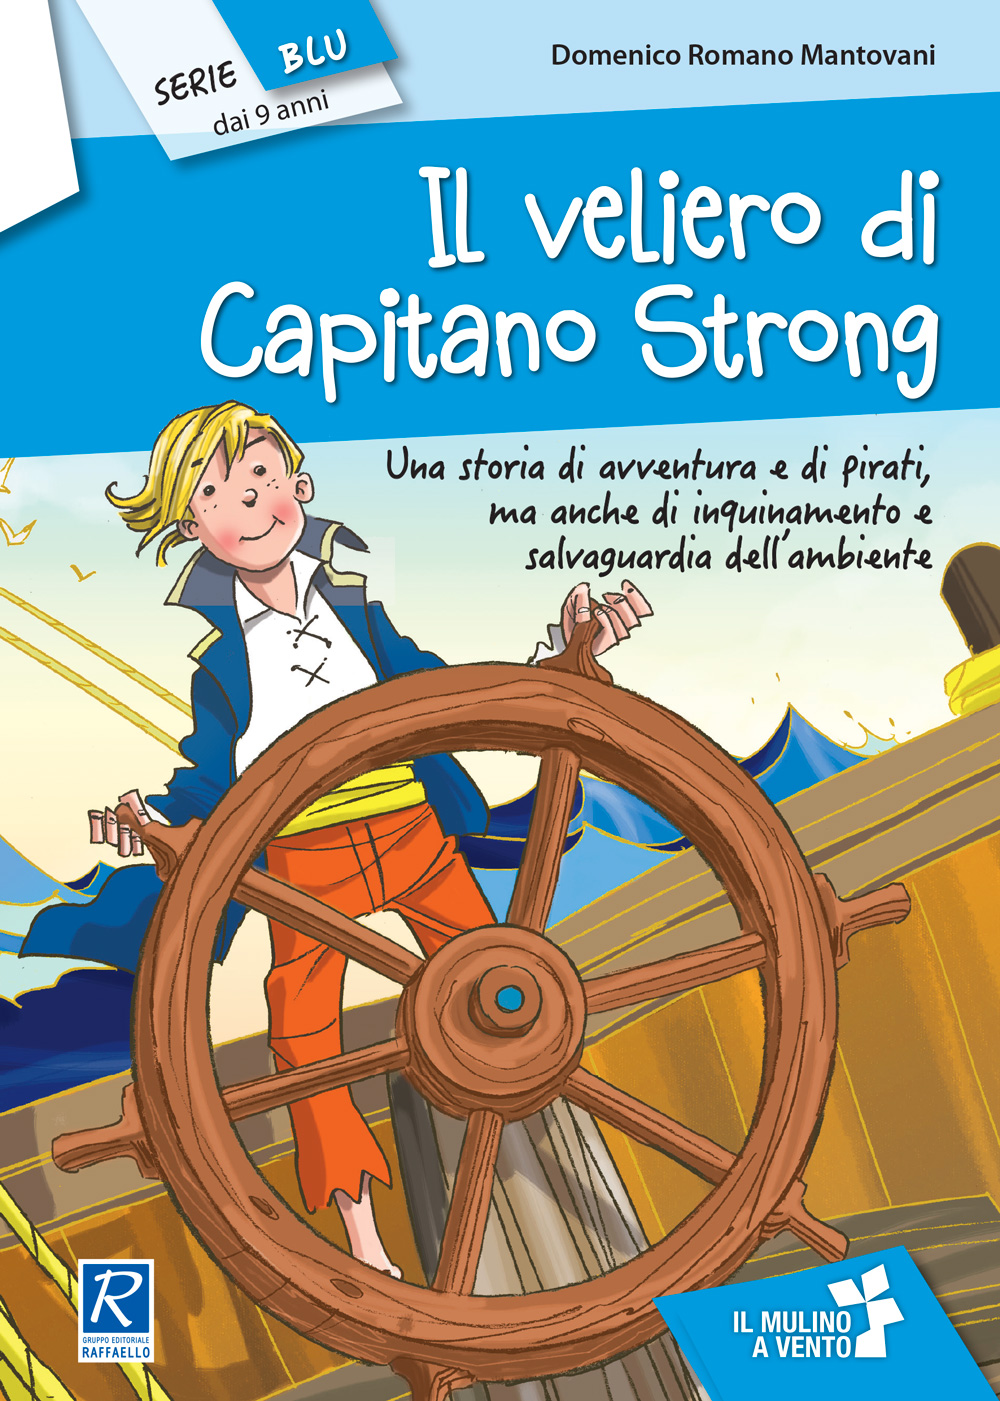 https://www.ilmulinoavento.it/images/copertine/narrativa-primaria/il-veliero-del-capitano-strong-1000.jpg